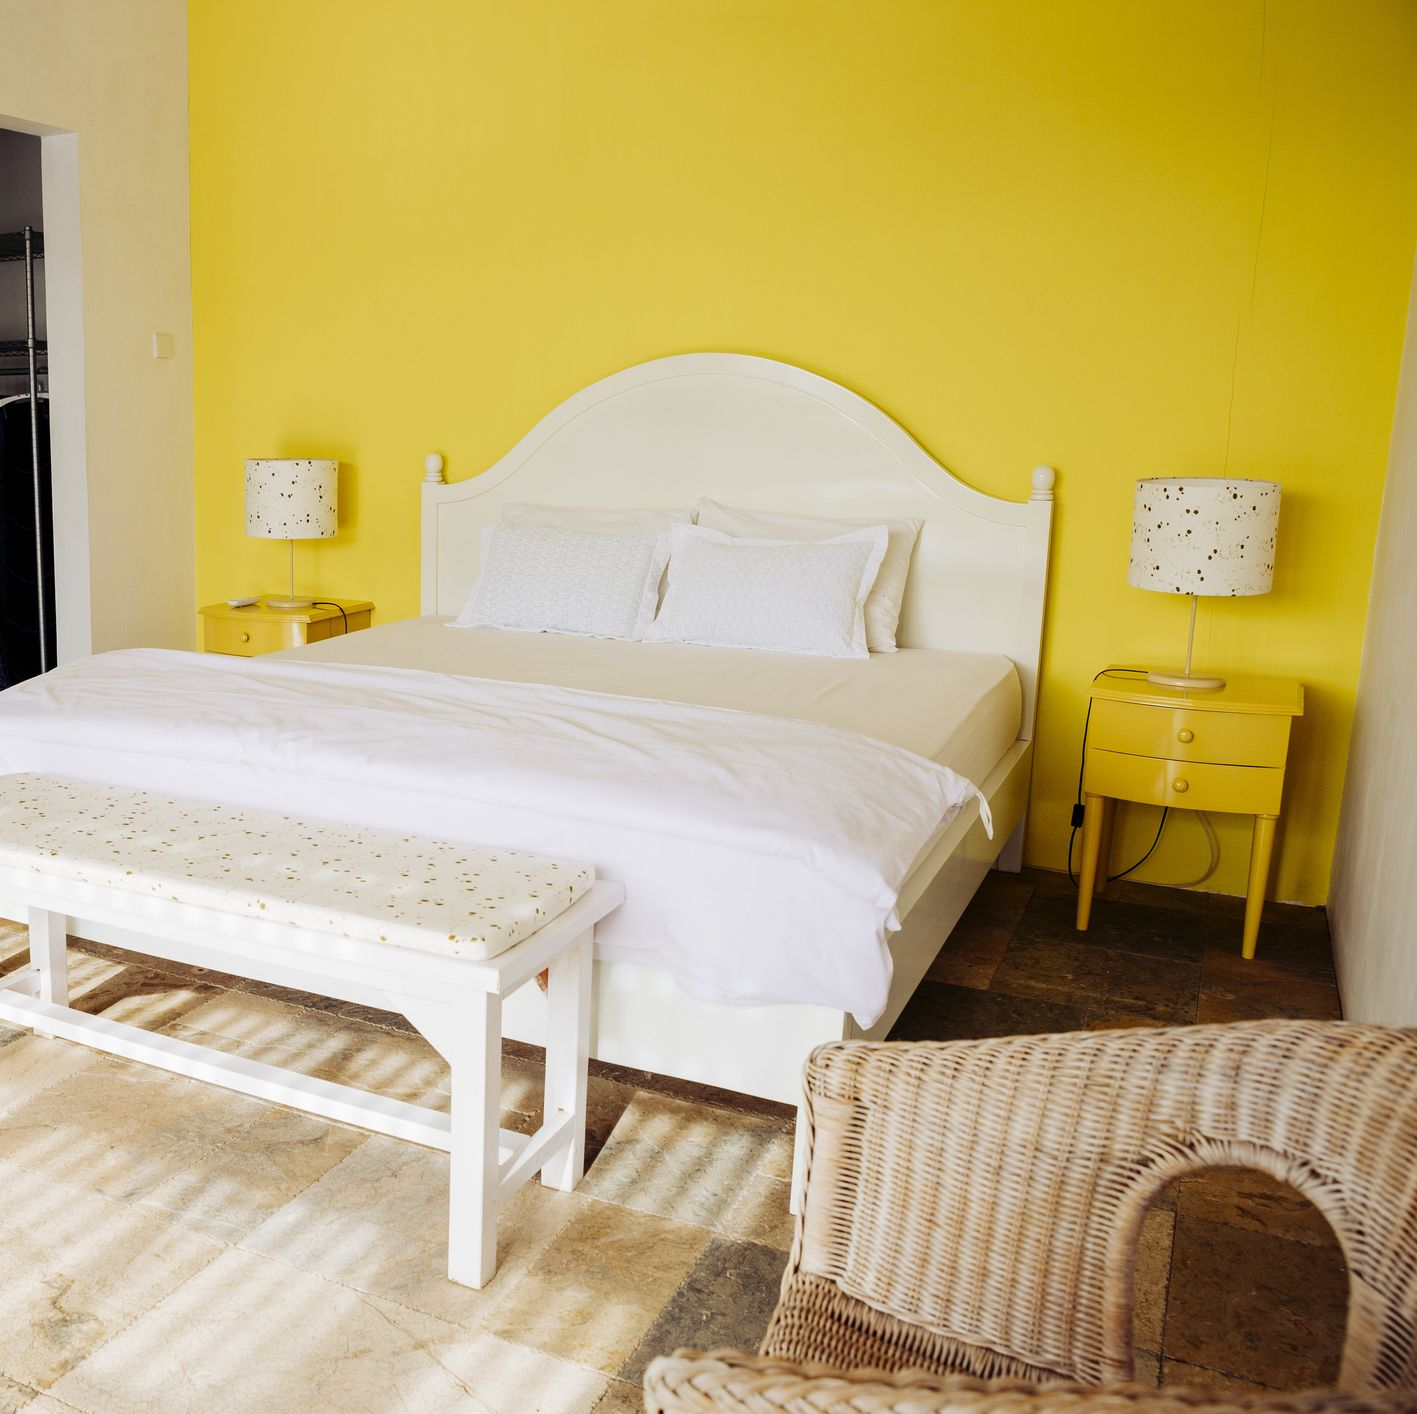 Indonesia, Bali, bedroom with yellow wall and yellow bedside cabinets of a holiday villa